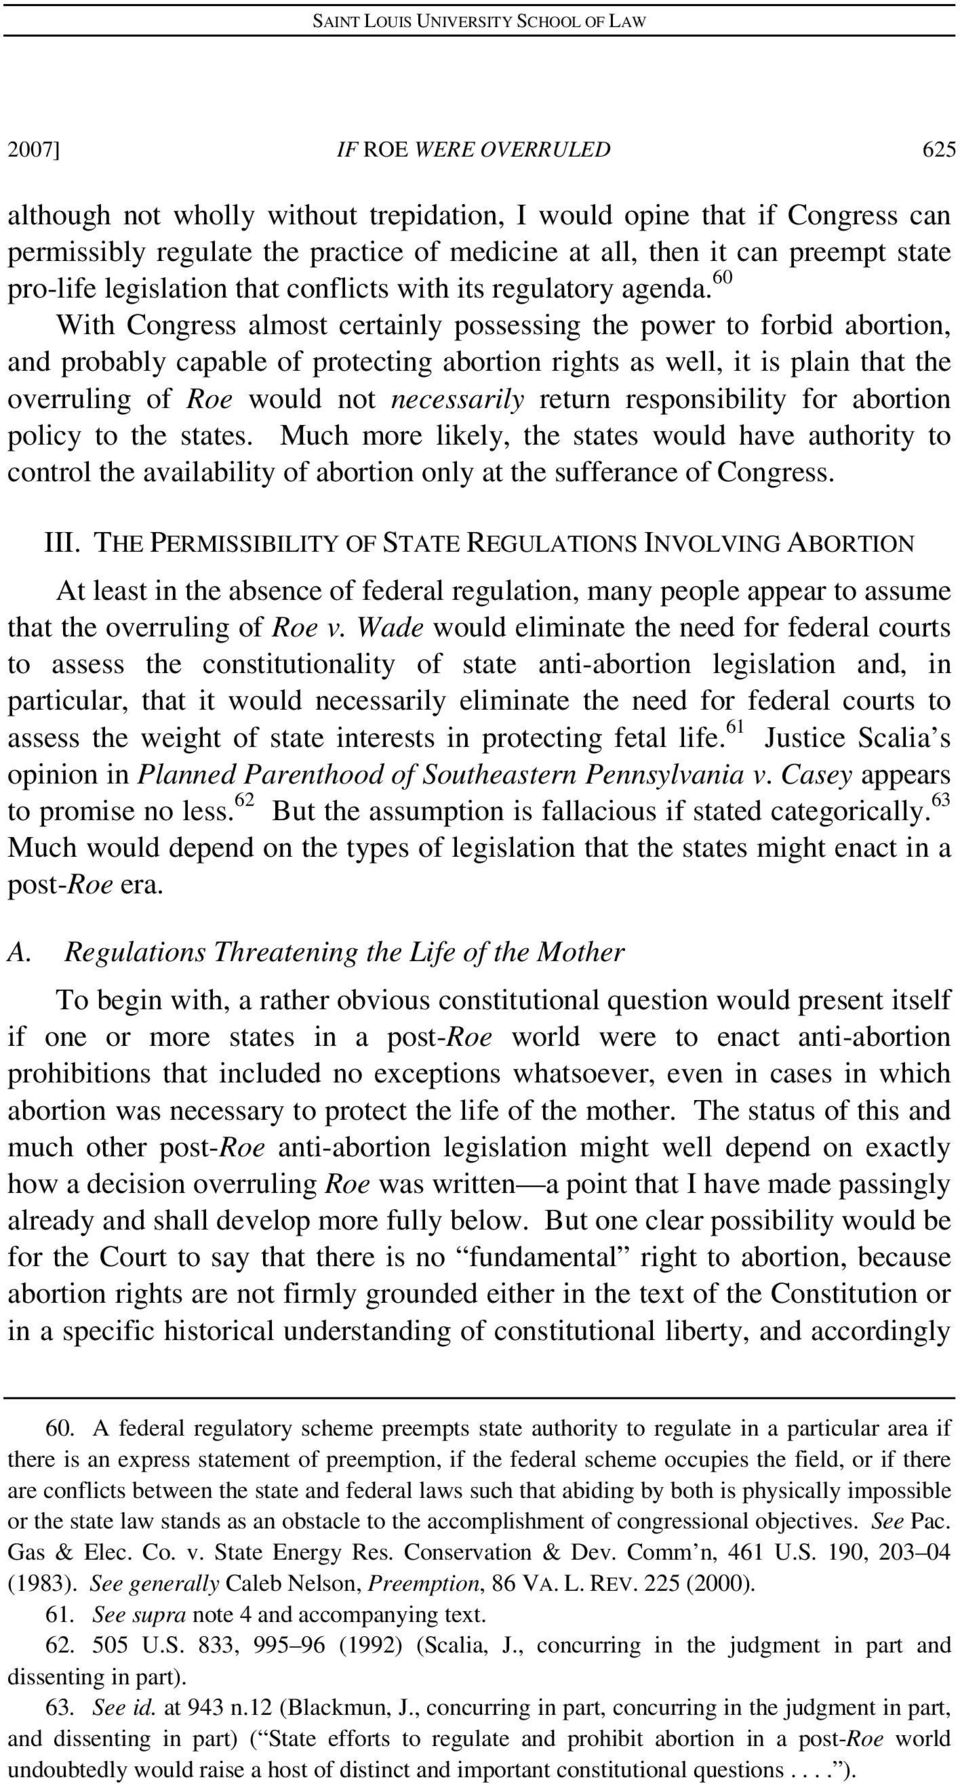 60 With Congress almost certainly possessing the power to forbid abortion, and probably capable of protecting abortion rights as well, it is plain that the overruling of Roe would not necessarily